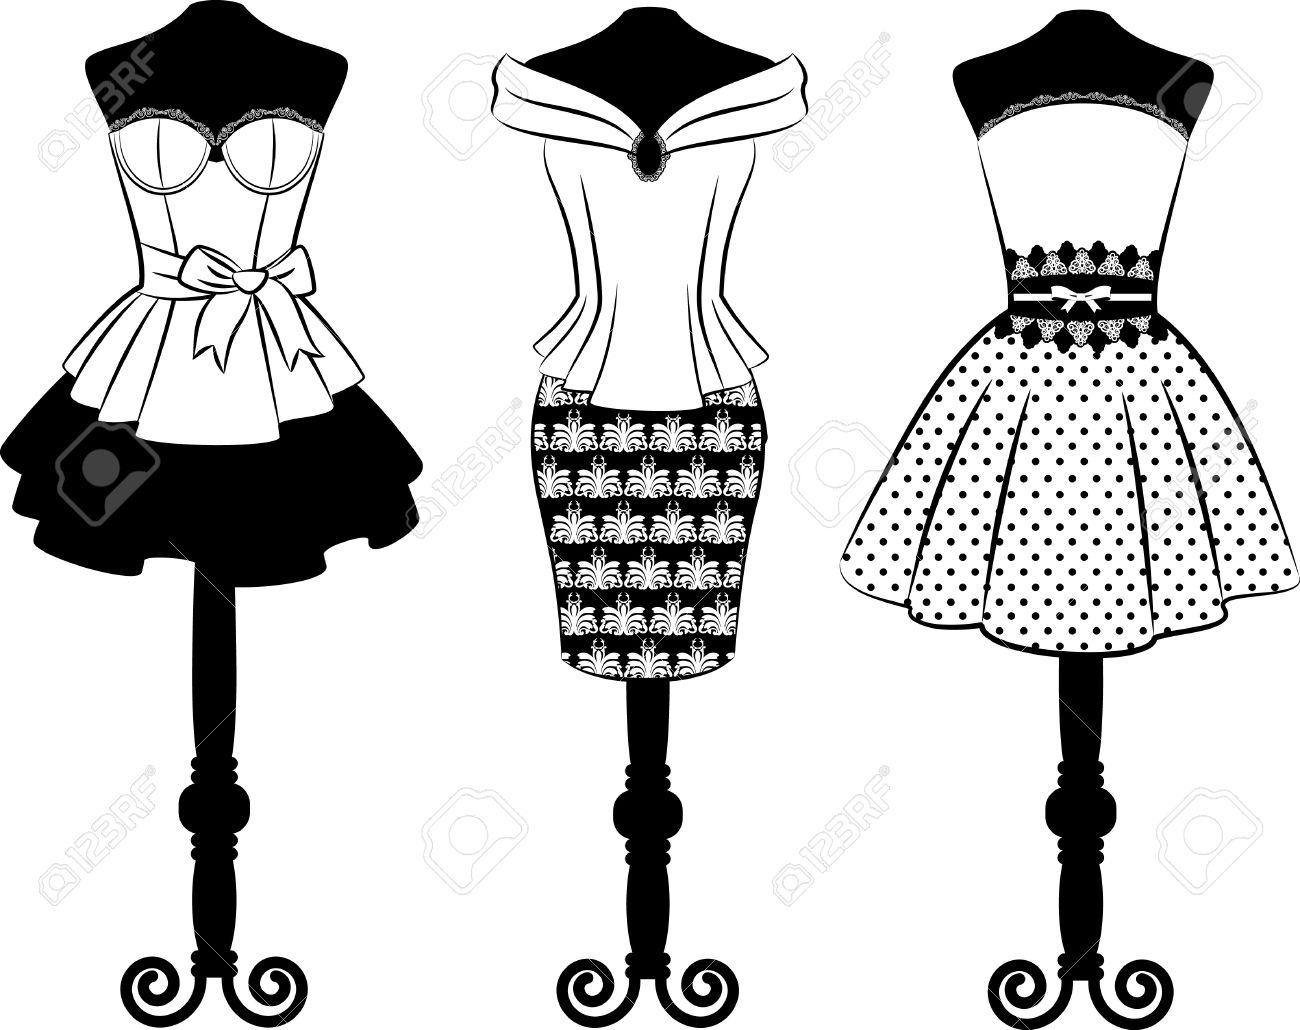 Black dress cartoon - Stock Photo Vintage Dress With Lace Ornaments Set